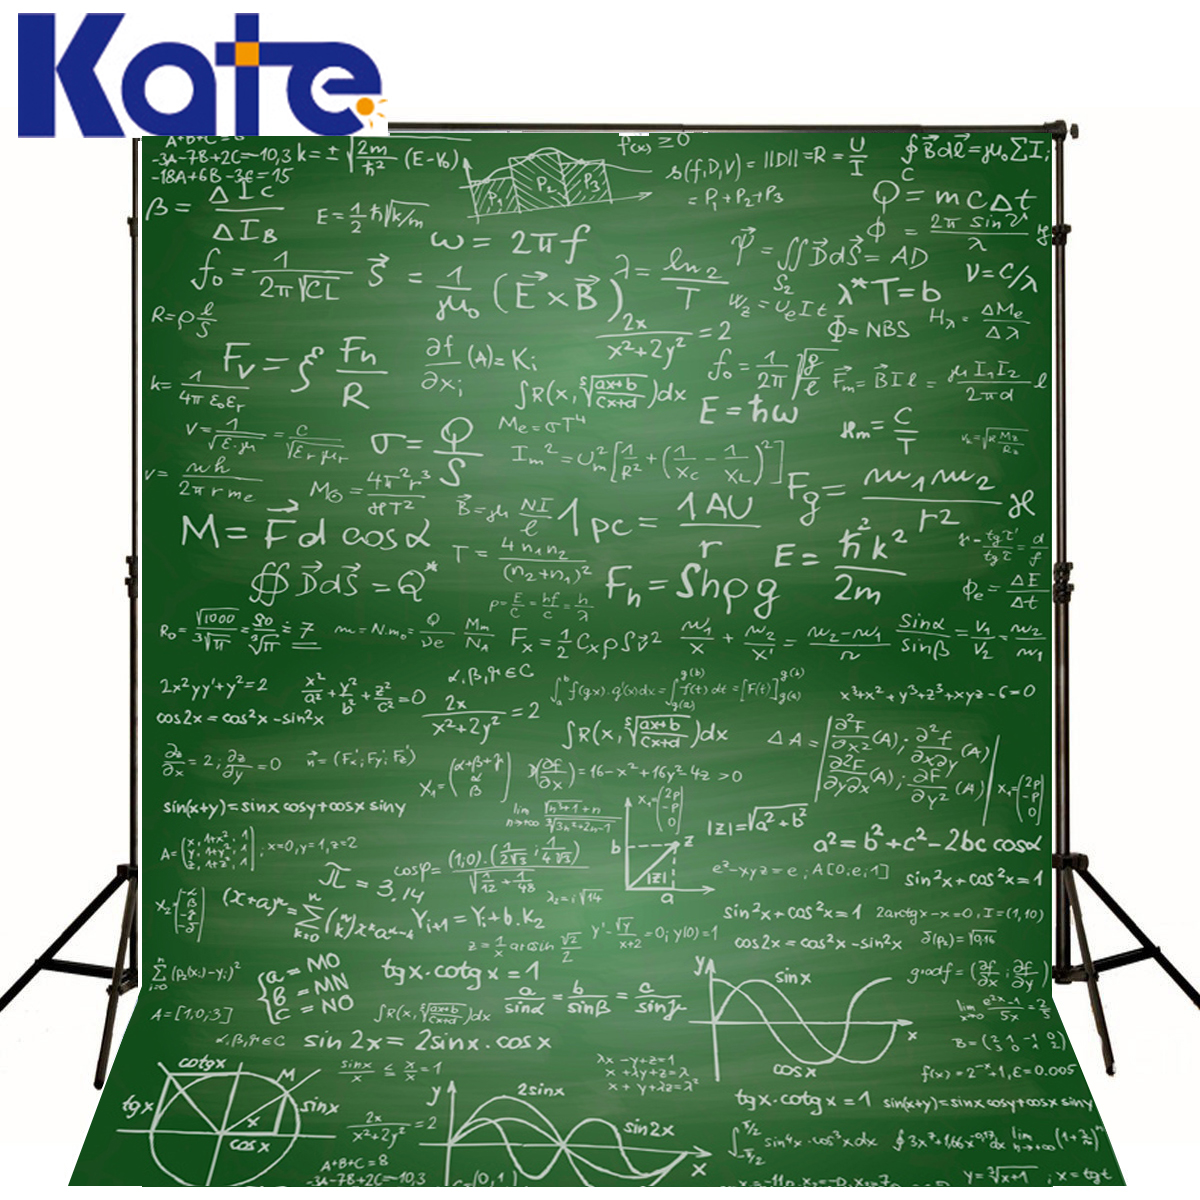 Kate 8x8ft Children Background Back to School Mathematical Equation Formula Photo Studio Backdrop Green Board Chalk Fotografia